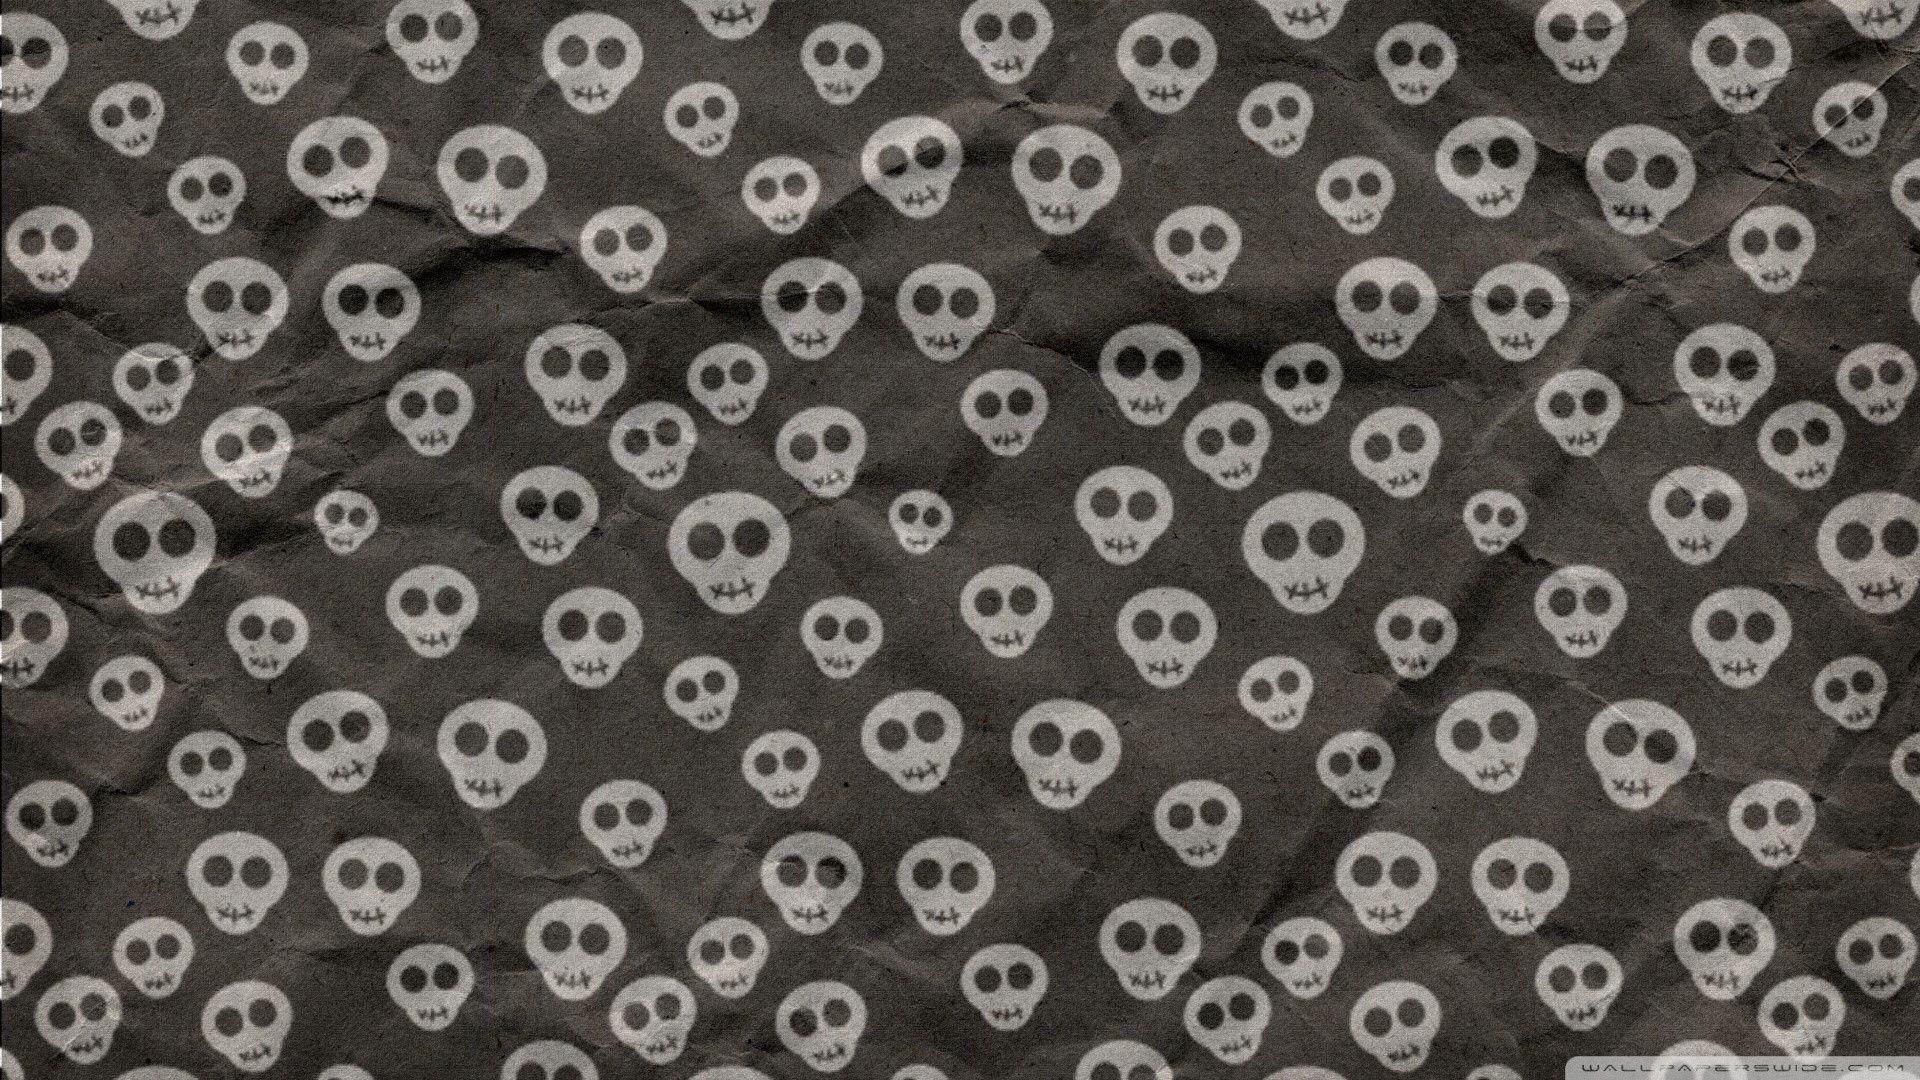 Skulls Tumblr Backgrounds Posted By Samantha Tremblay